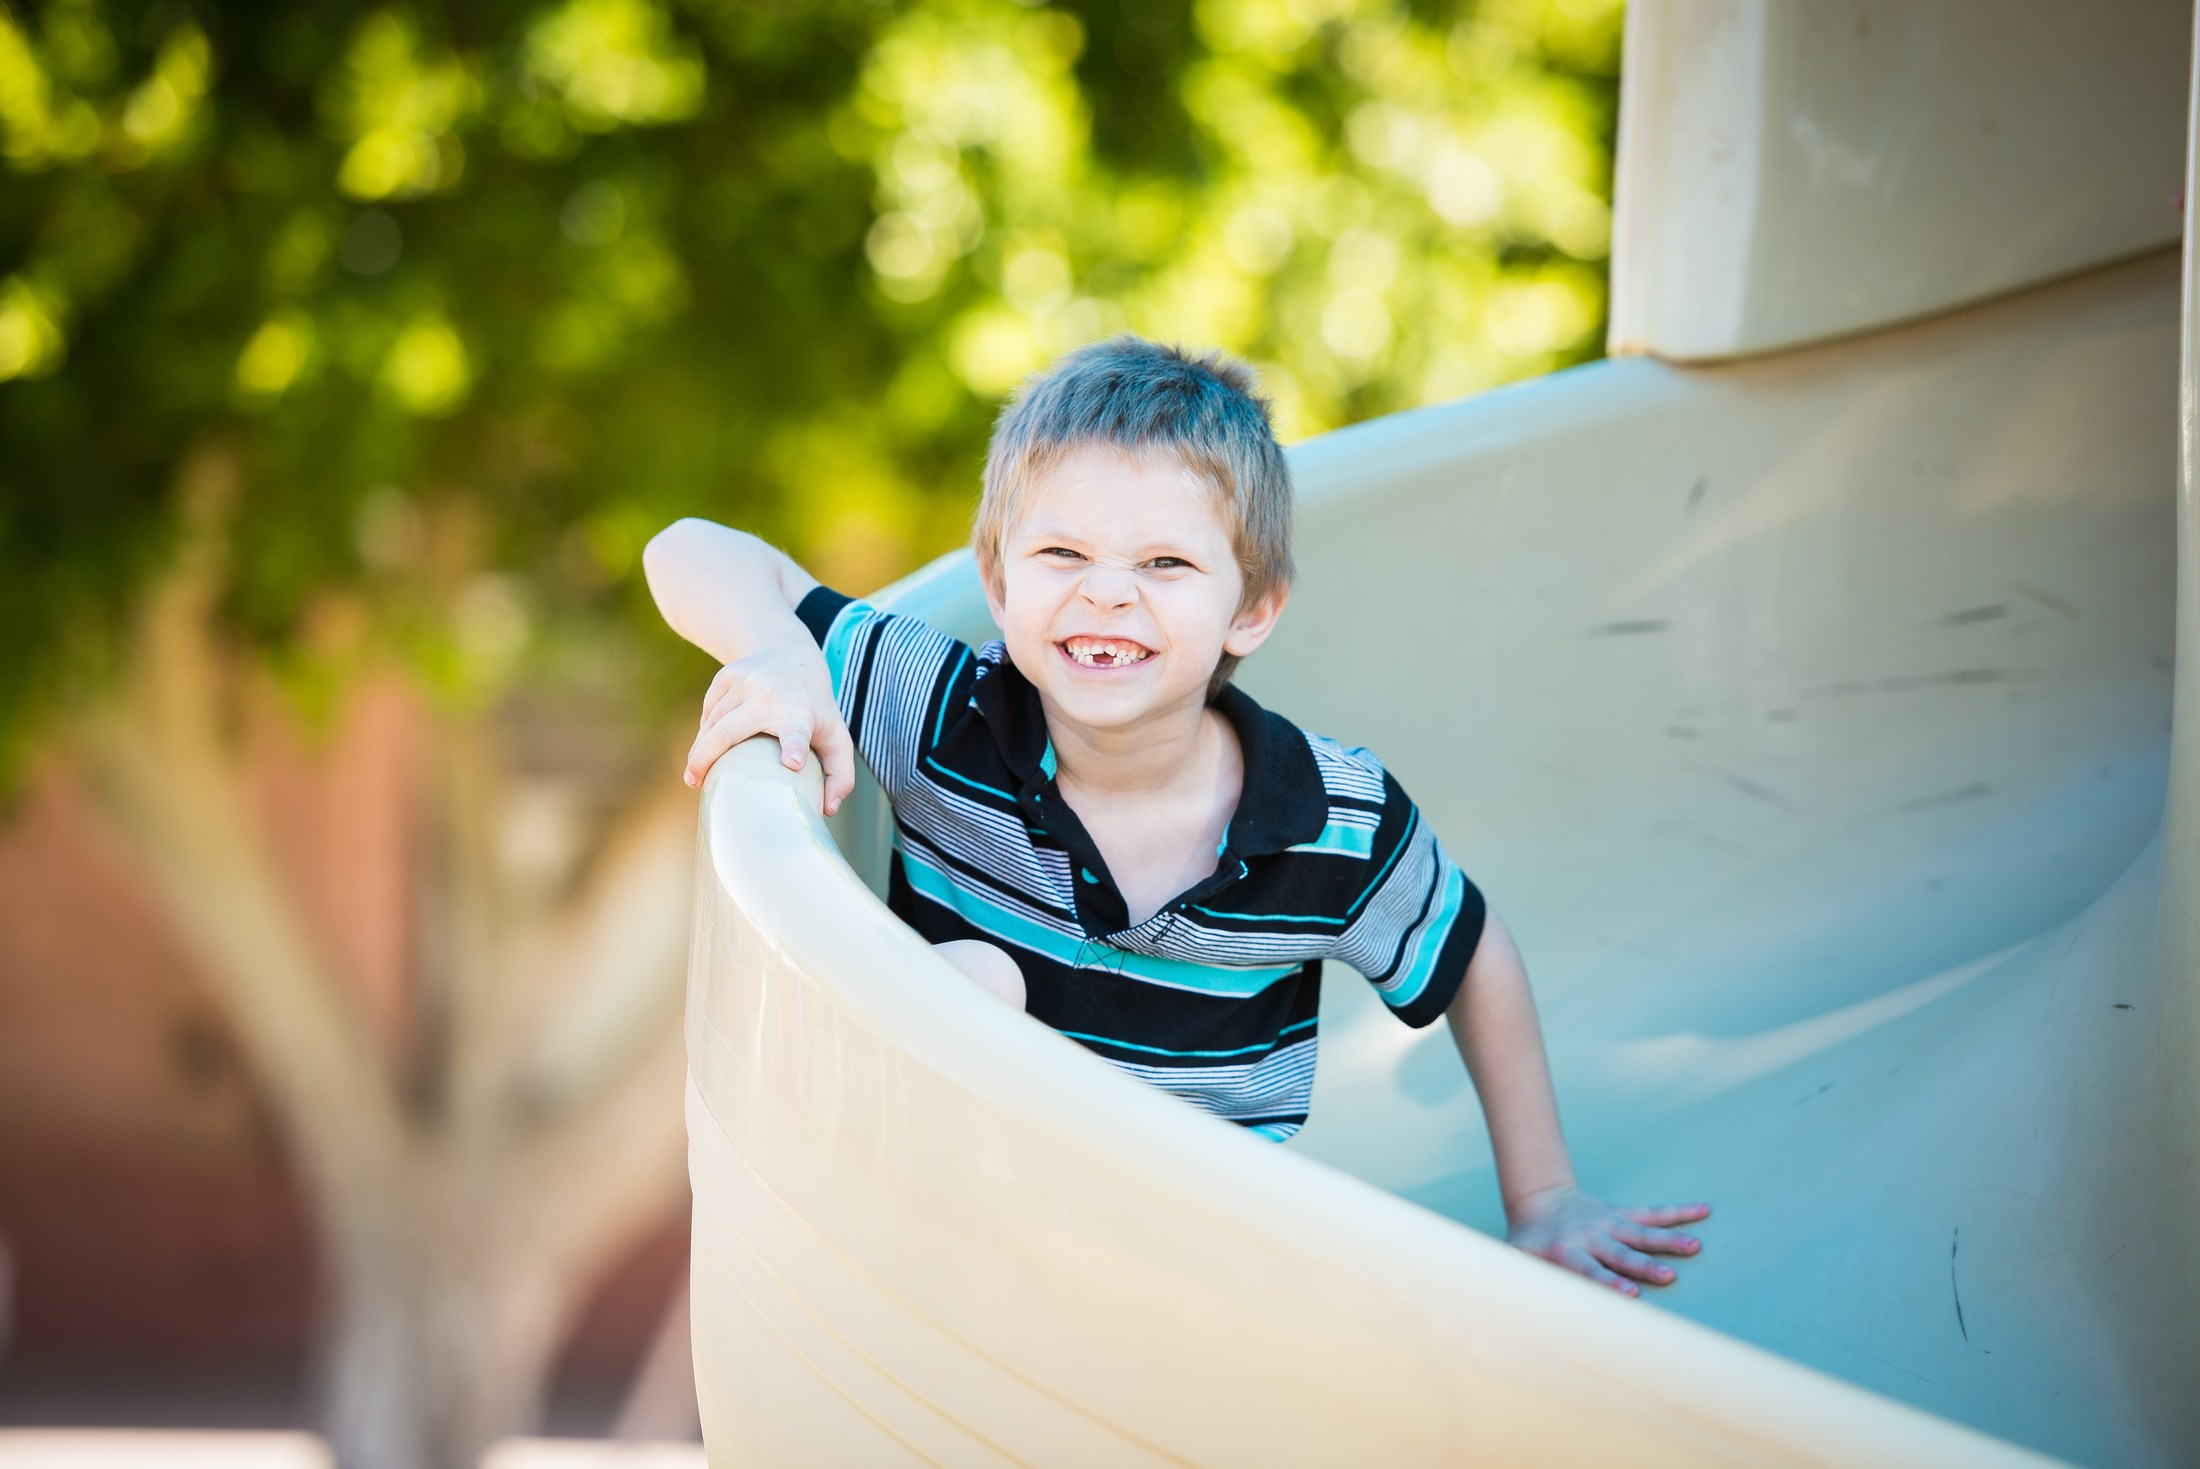 PUSD Kindergarten student on slide